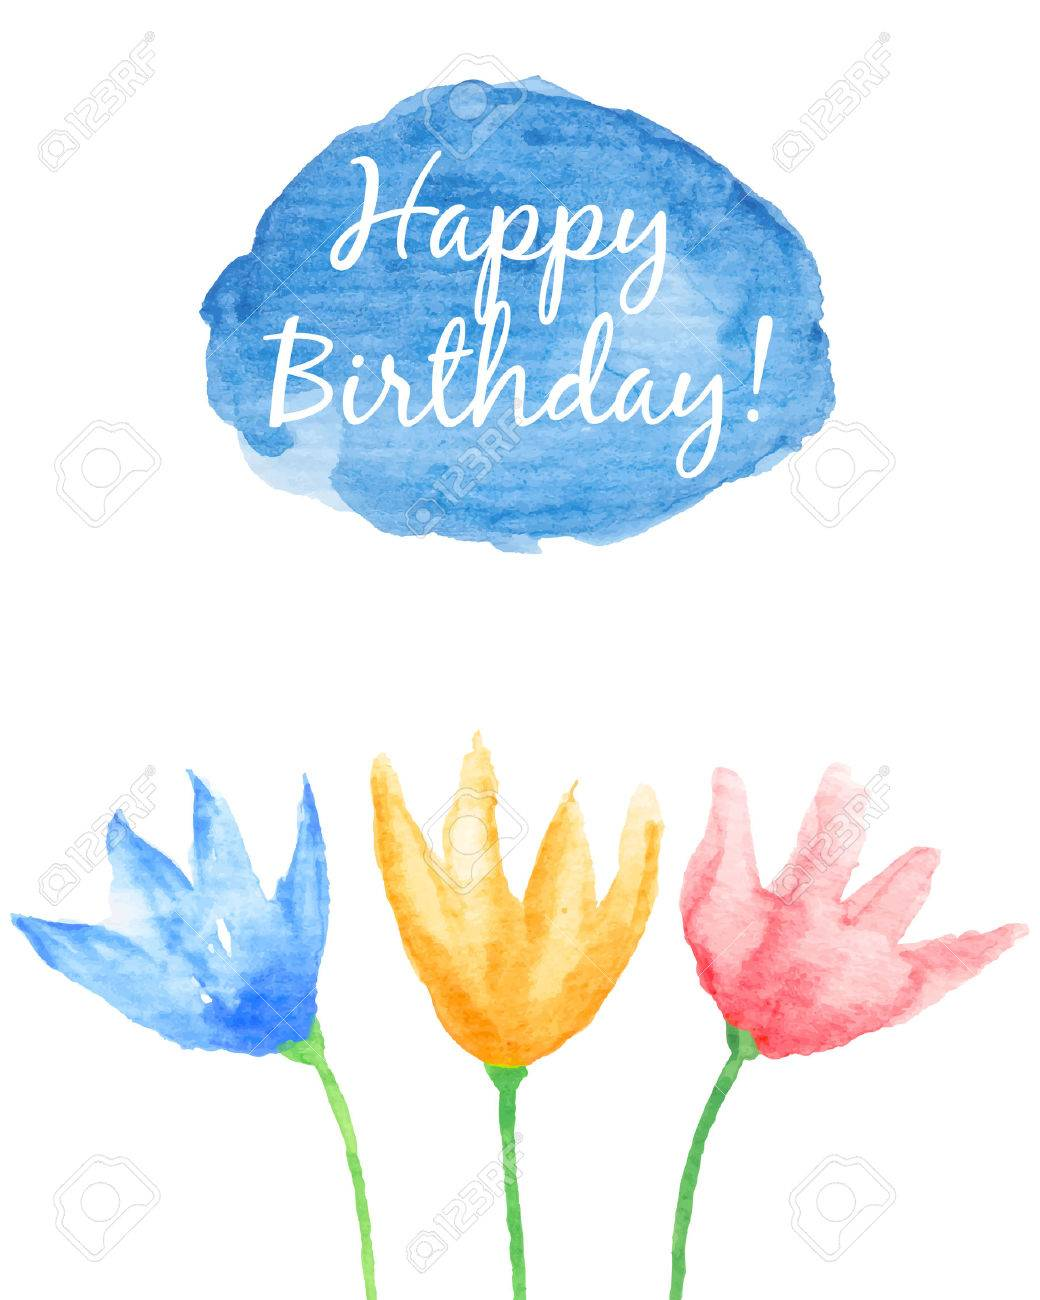 Floral Happy Birthday Card Hand Painted Watercolor Flowers Change The Caption And Use This